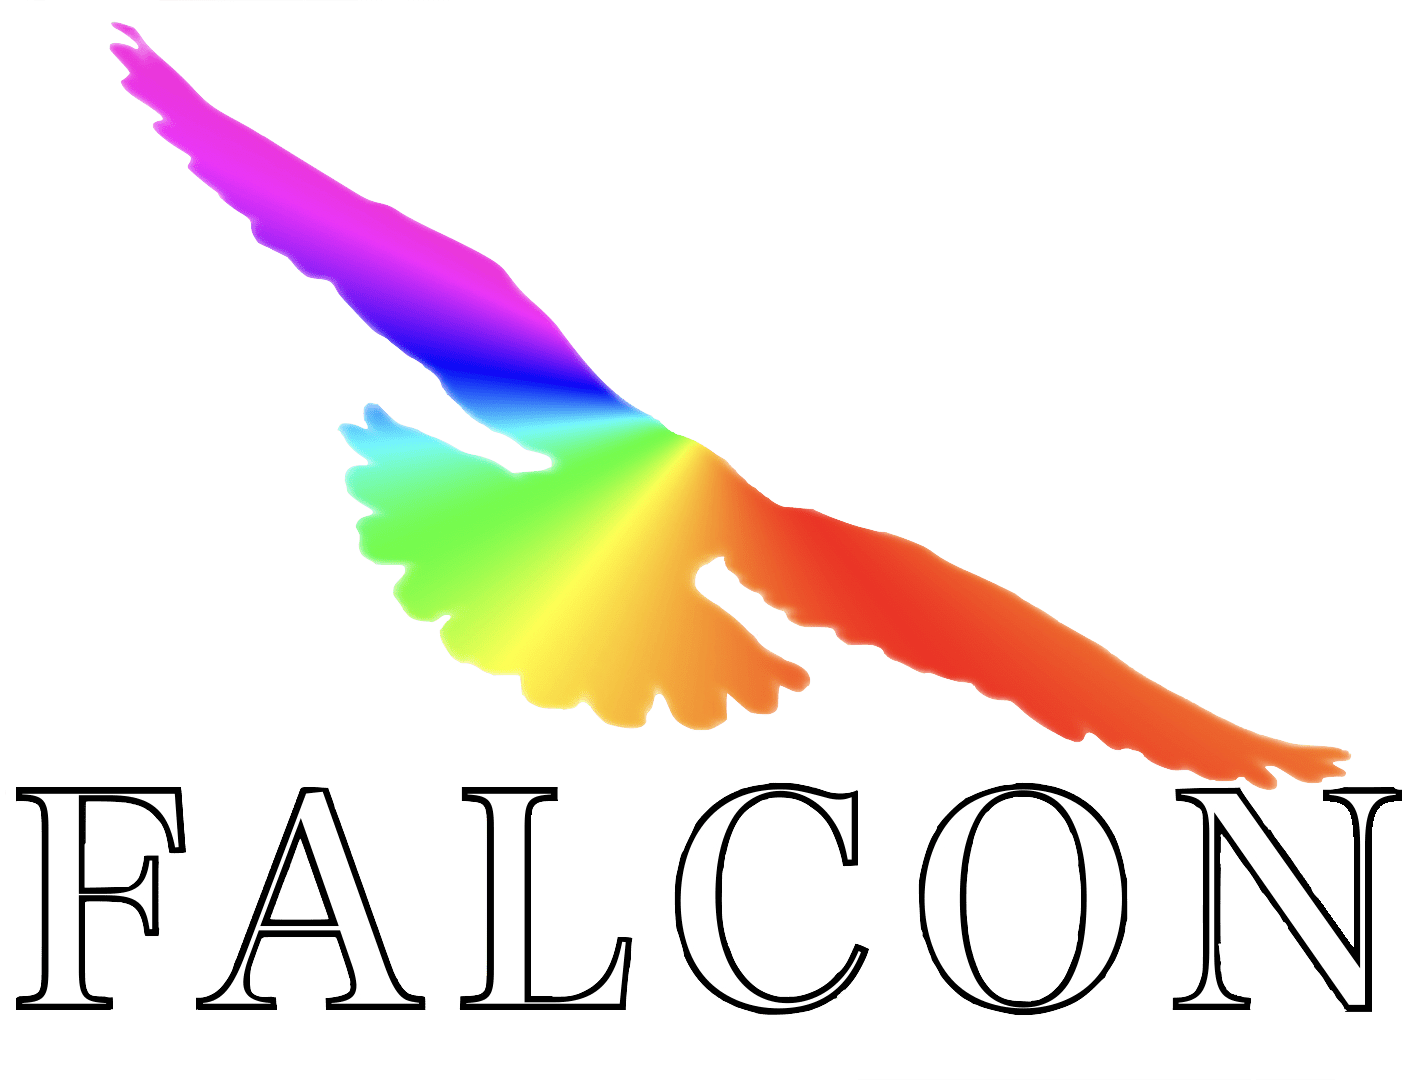 FALCON Official site